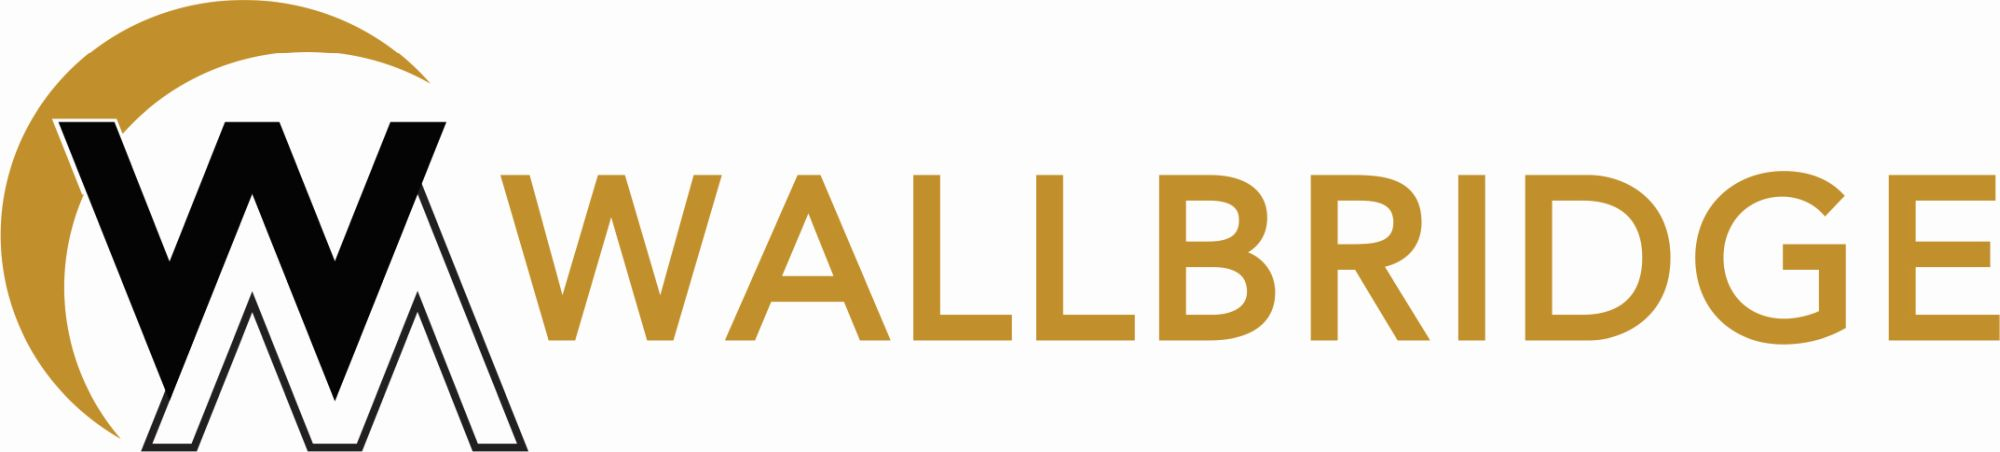 Wallbridge Enters into Term Sheet with Kirkland Lake Gold on Joint Venture of the Detour East Property